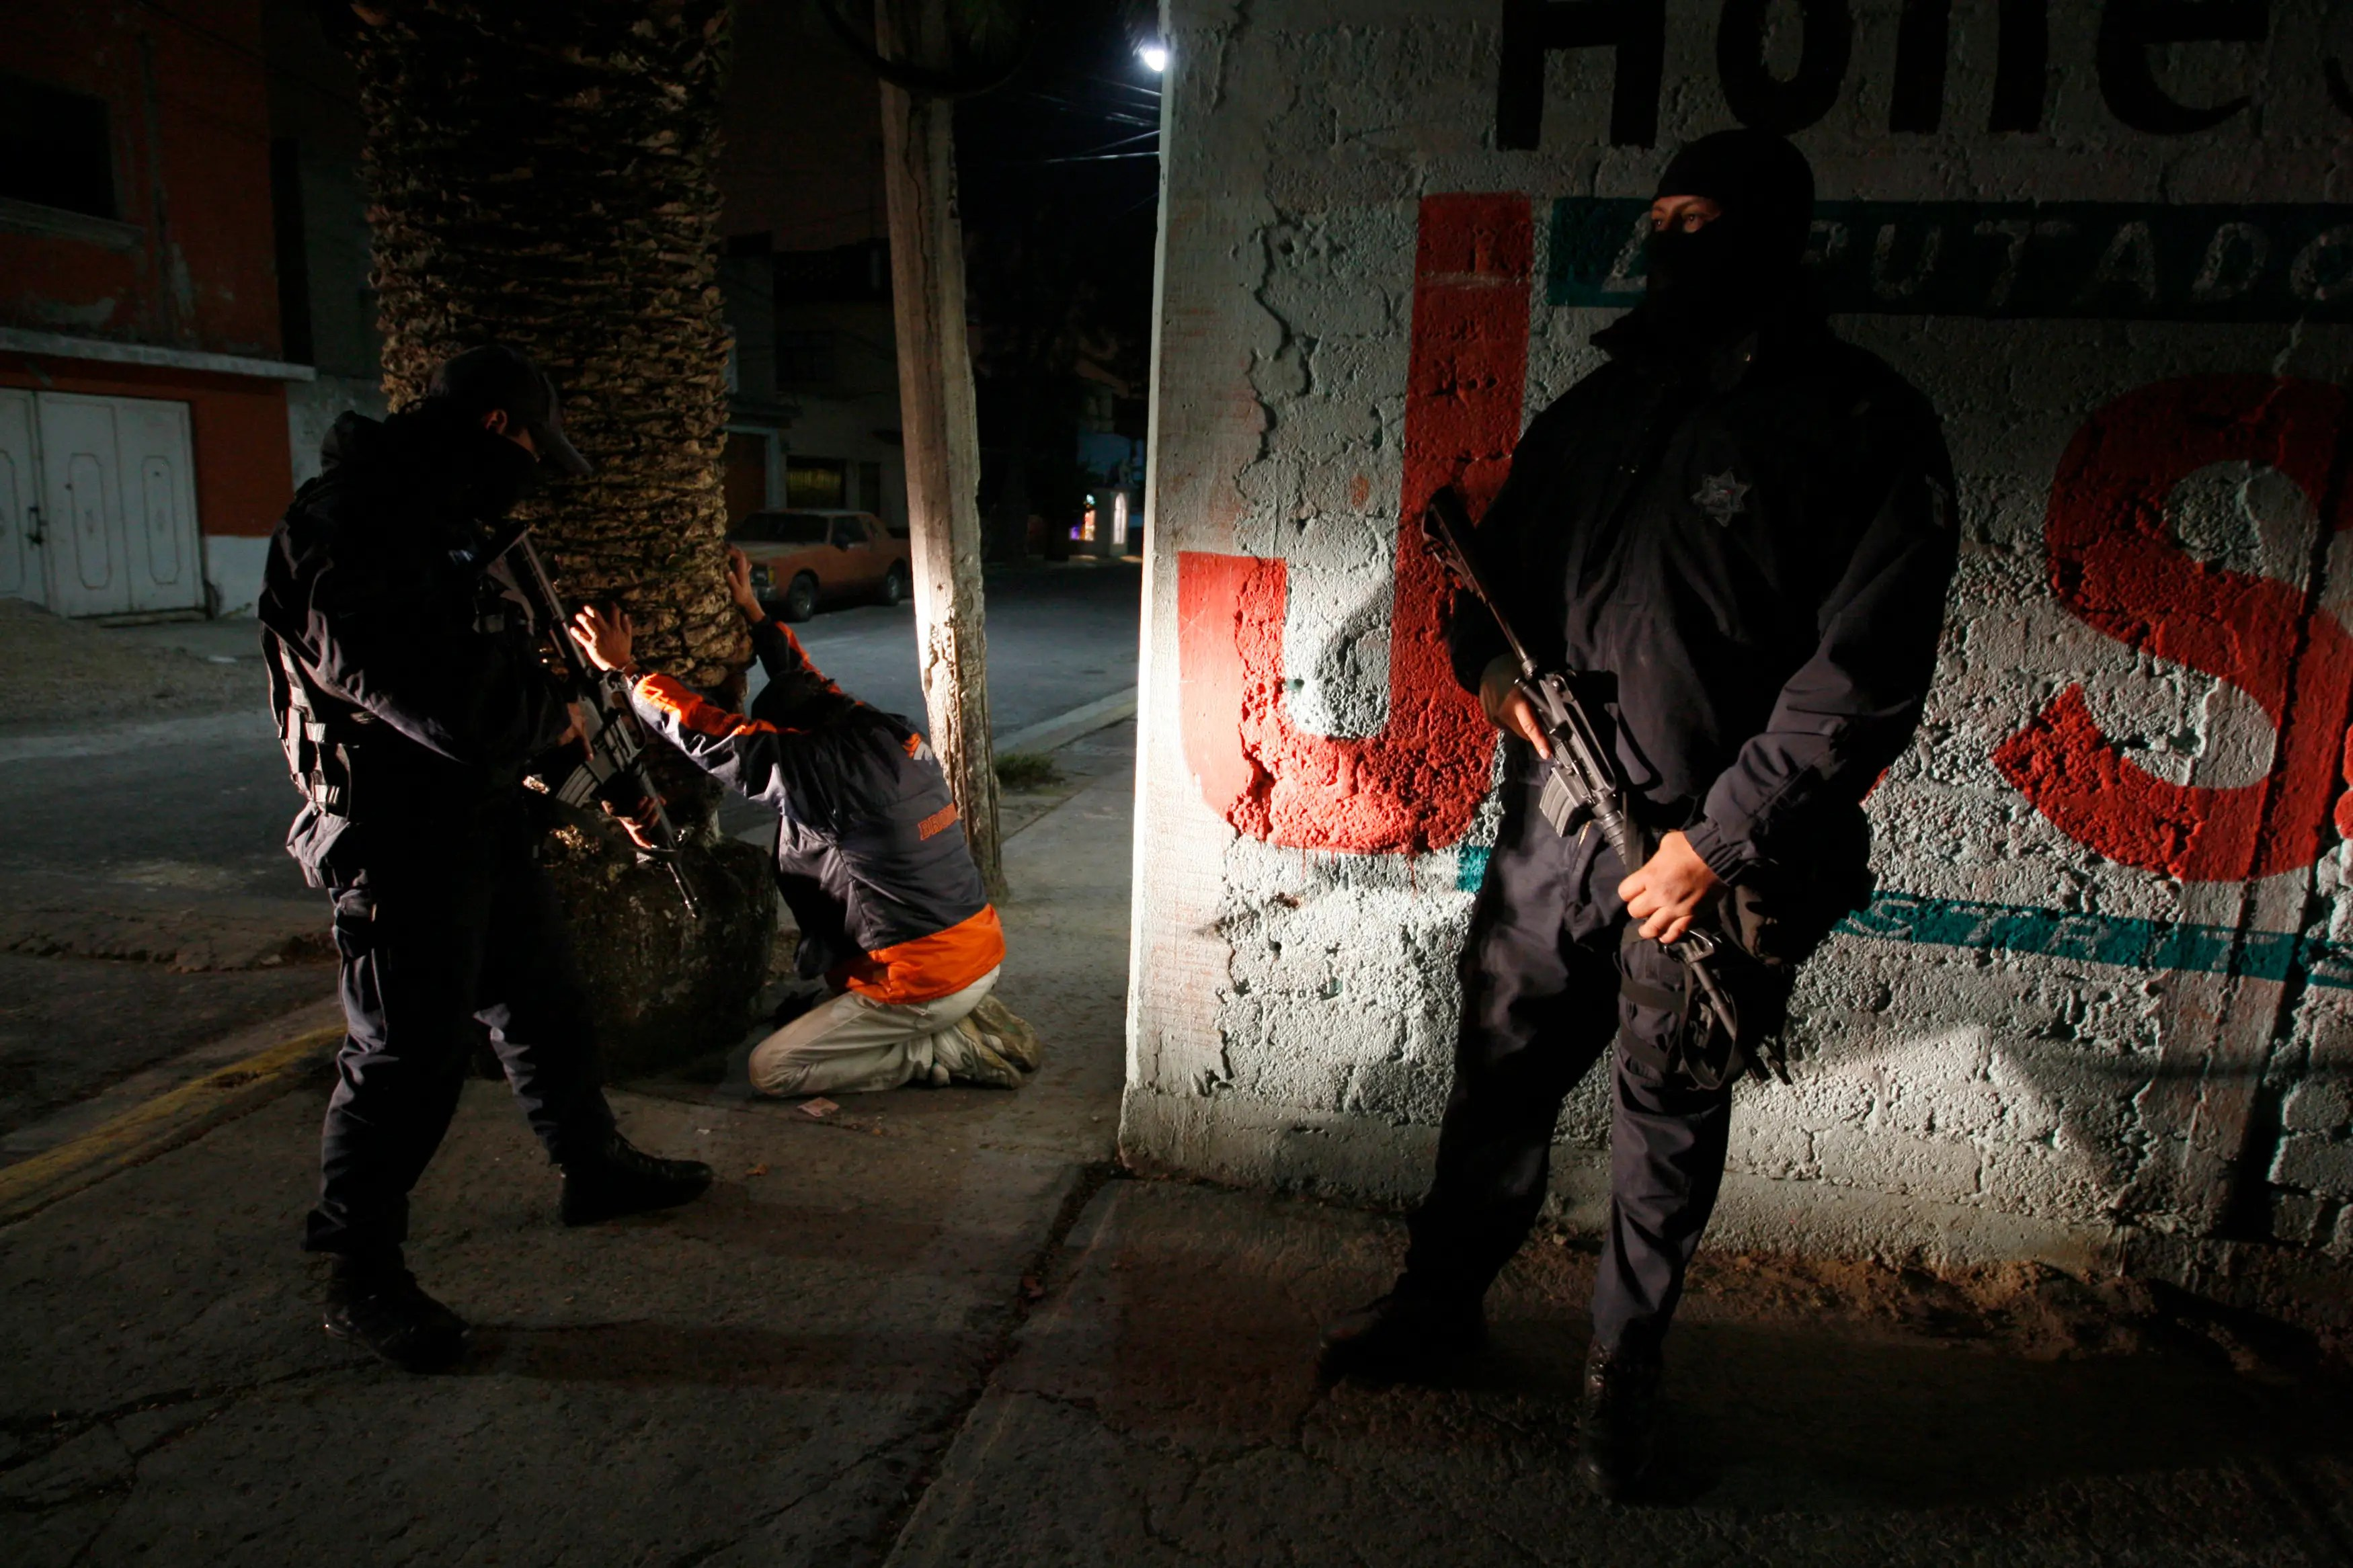 Ecatepec Mexico police crime arrest